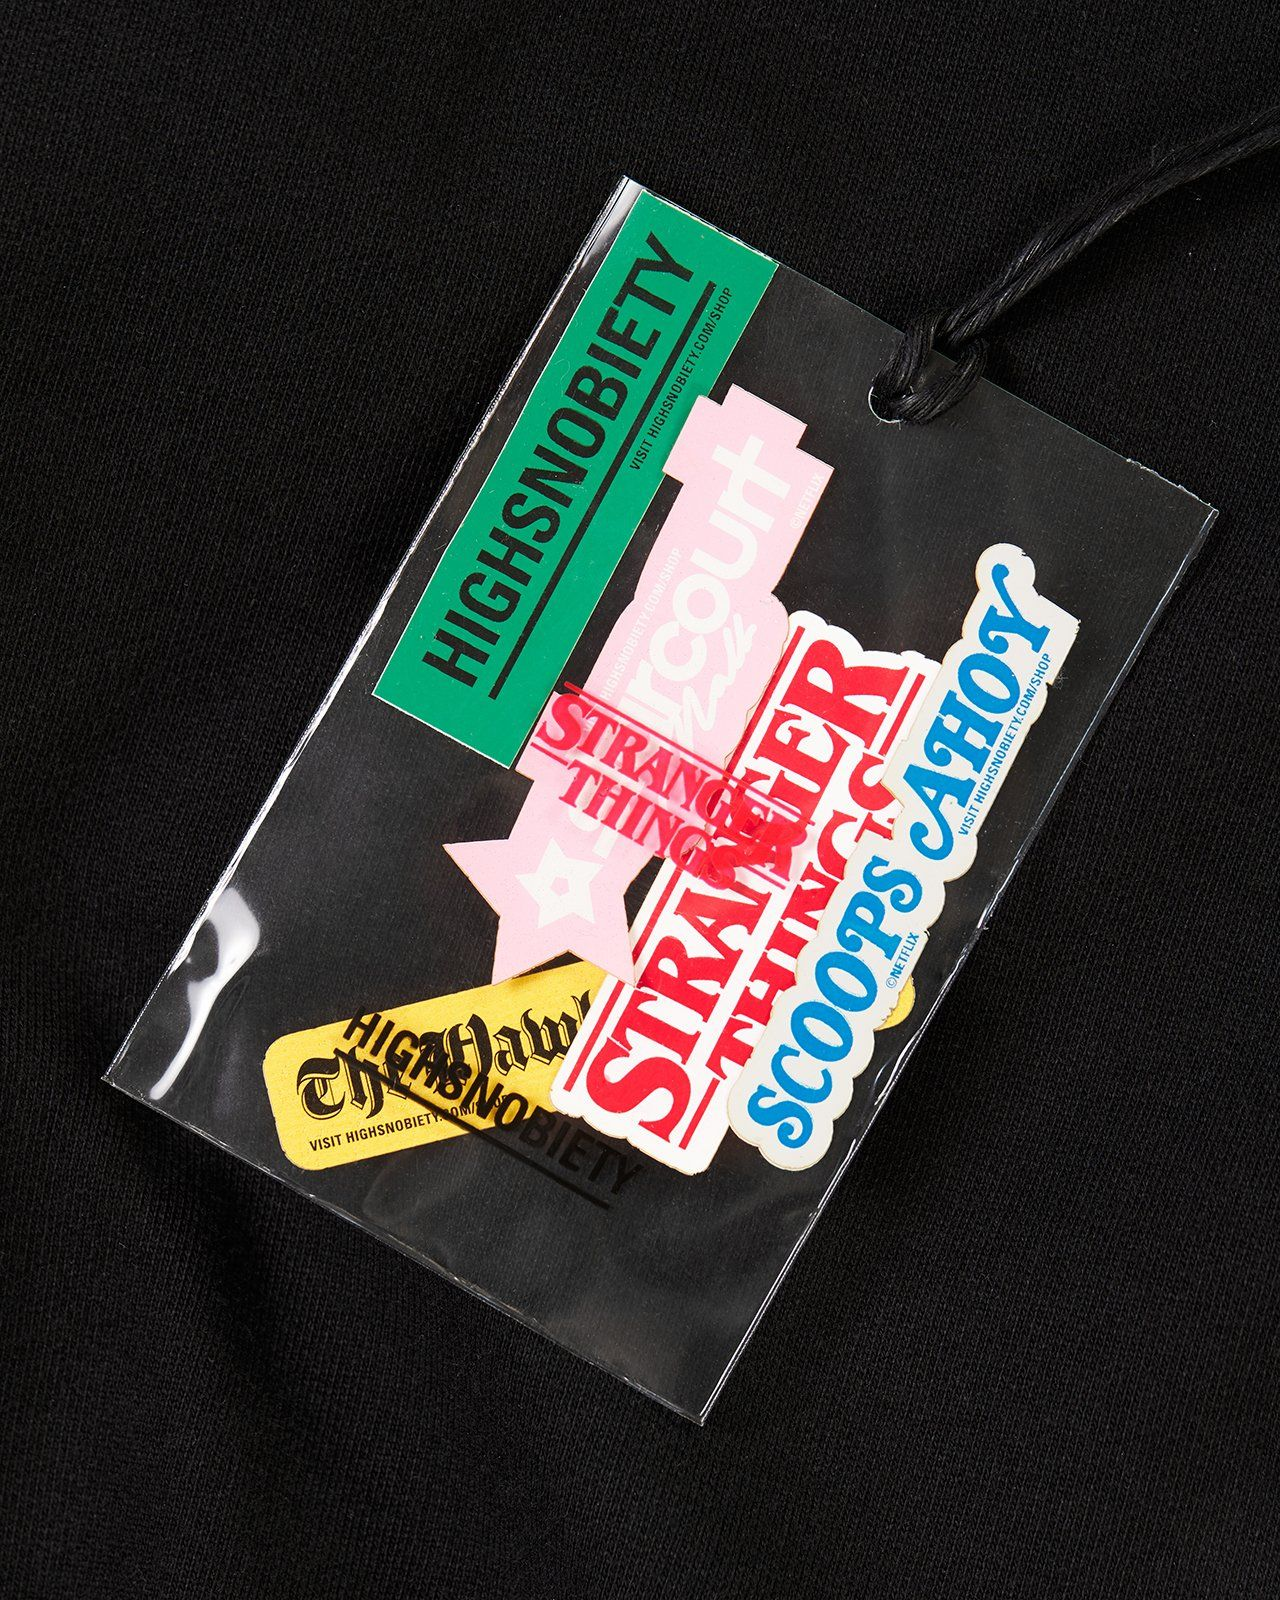 Stranger Things 3 x Highsnobiety Logo Hoodie - Black - Image 8